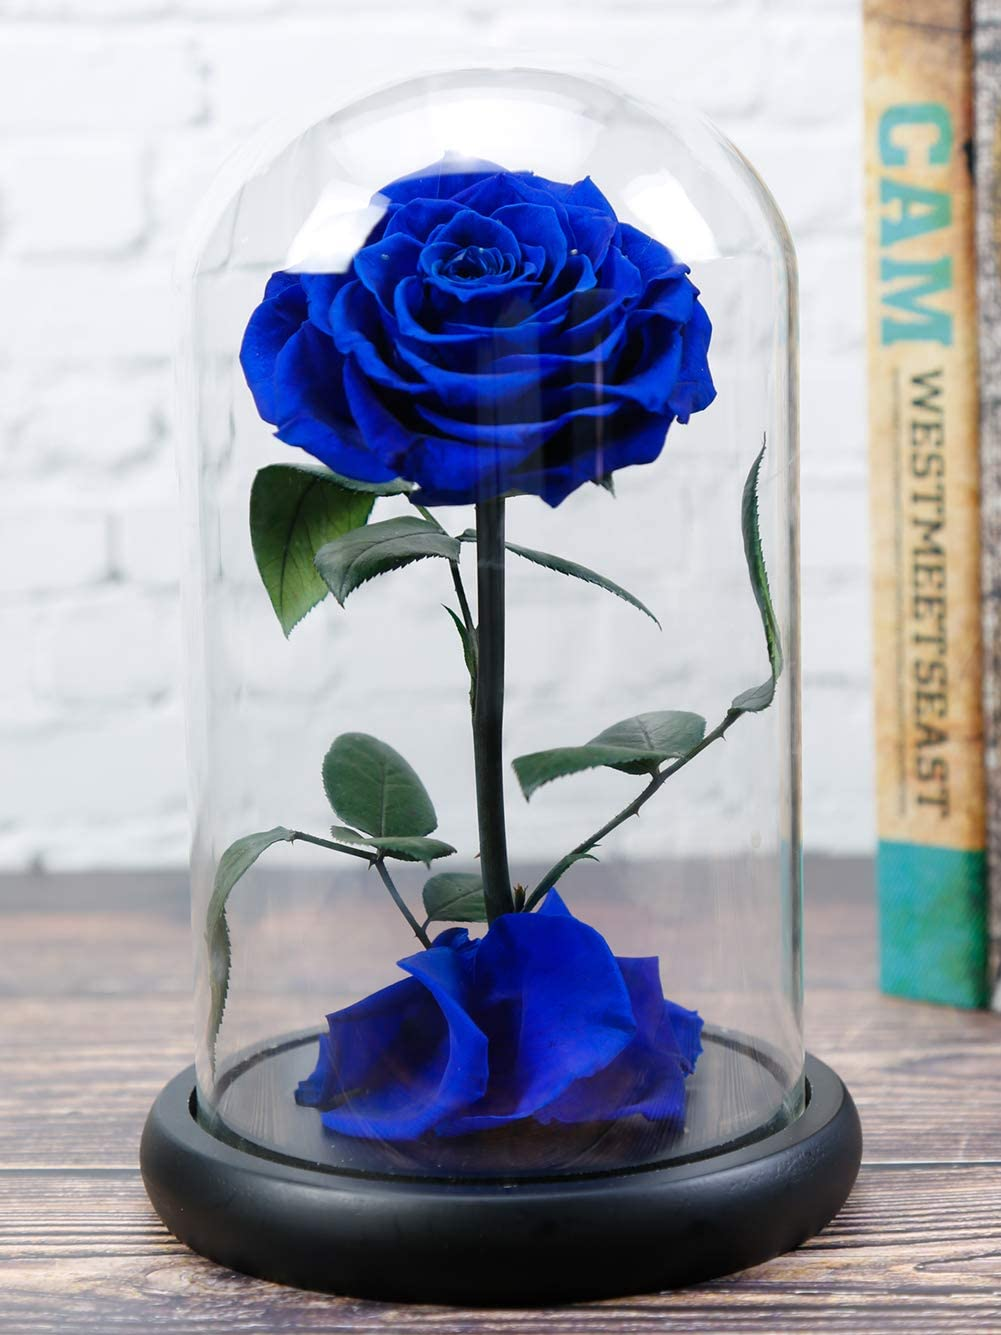 Amazon Com Dear Her Beauty And The Beast Rose Handmade Preserved Roses Forever Flower Bluelover In Glass Dome Best Gift For Her Anniversary Valentine Birthday Wedding For Girls Wife Mother Lover Furniture